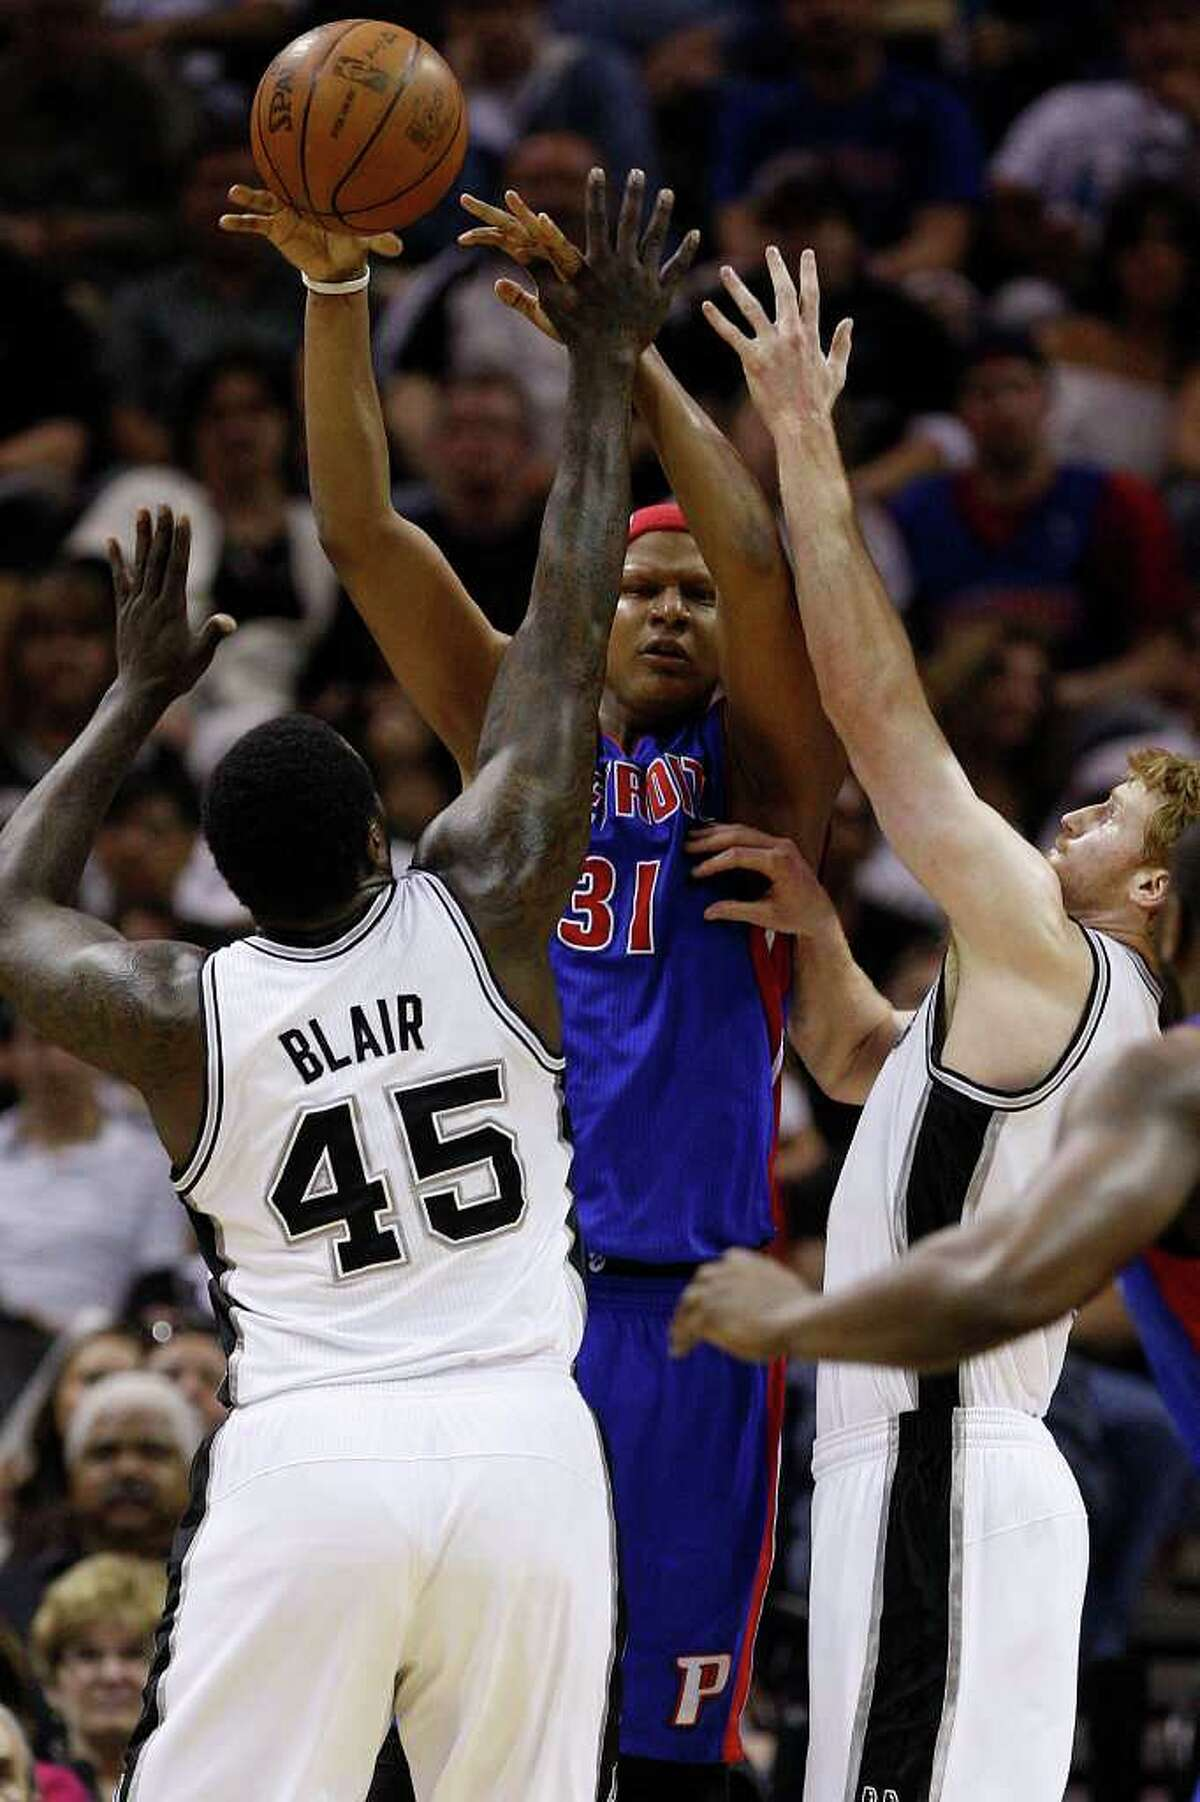 SPURS -- Detroit Pistons Charlie Villanueva gets pressure from San Antonio Spurs DeJuan Blair and Matt Bonner in the first half at the AT&T Center, Wednesday, March 9, 2011. JERRY LARA/glara@express-news.net